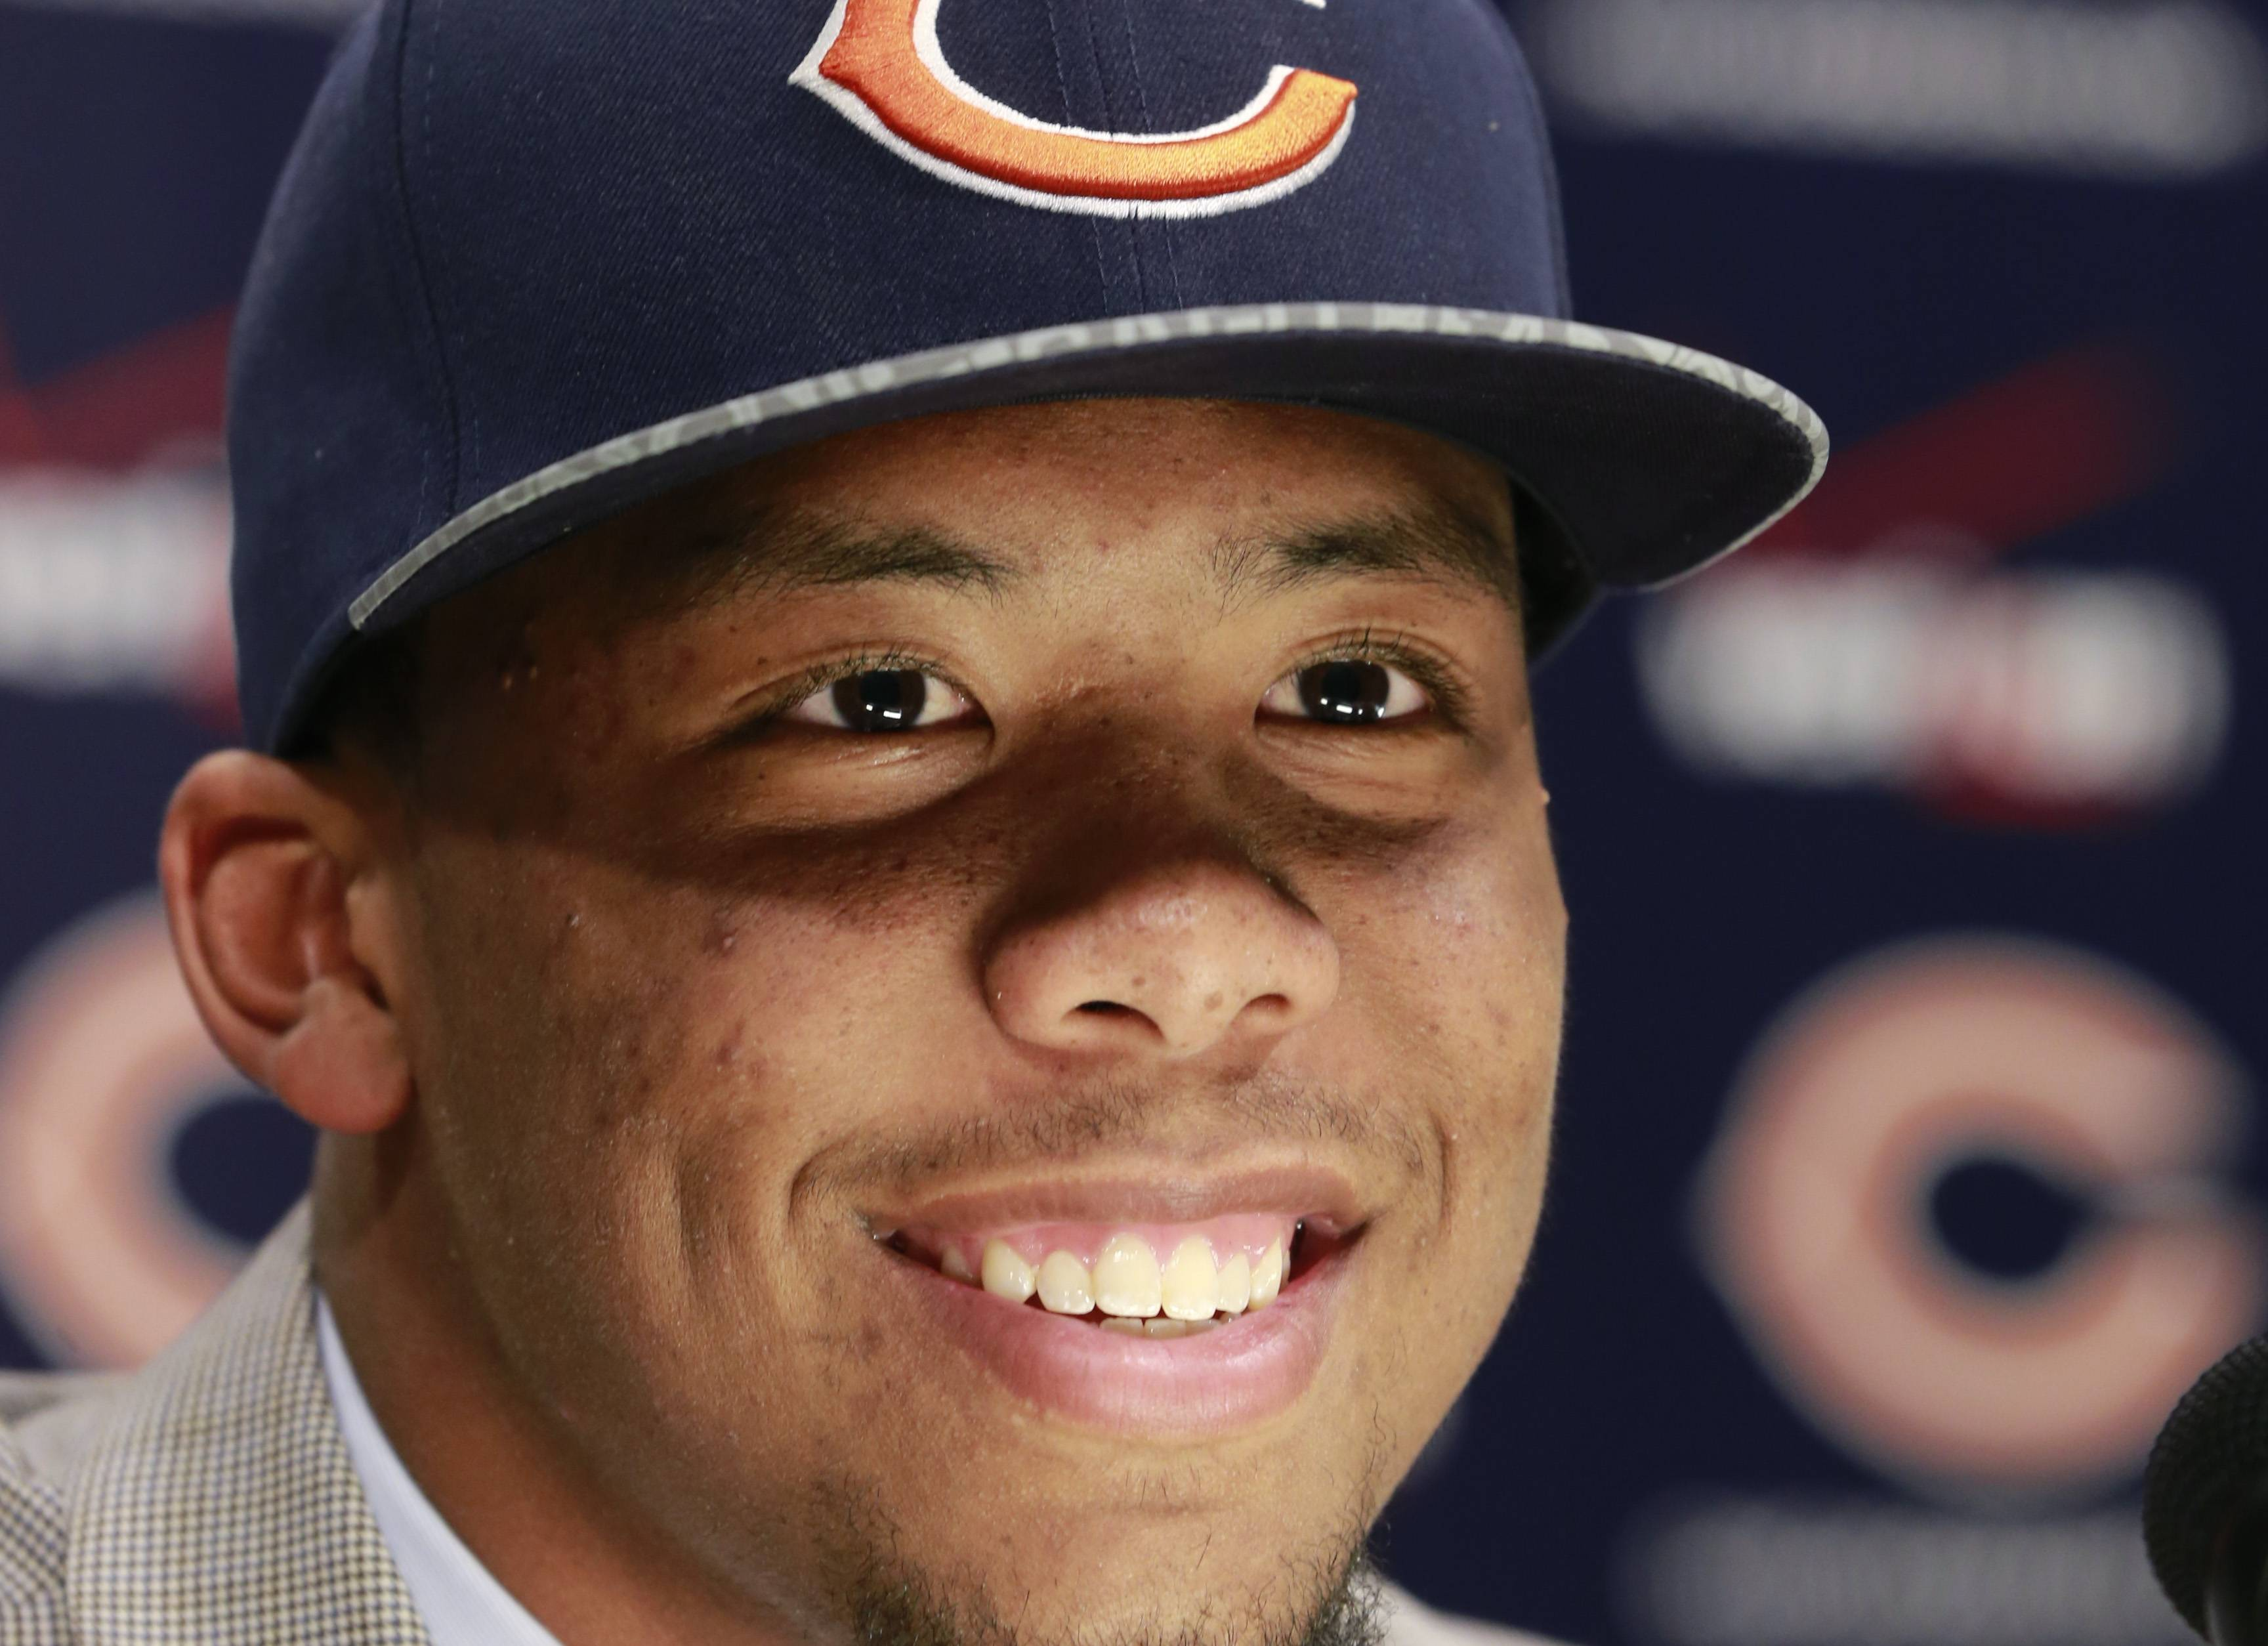 Chicago Bears first round draft pick Kyle Fuller, a cornerback from Virginia Tech, smiles as he responds to a question after being introduced at an NFL football news conference Friday, May 9, 2014, in Lake Forest, Ill.